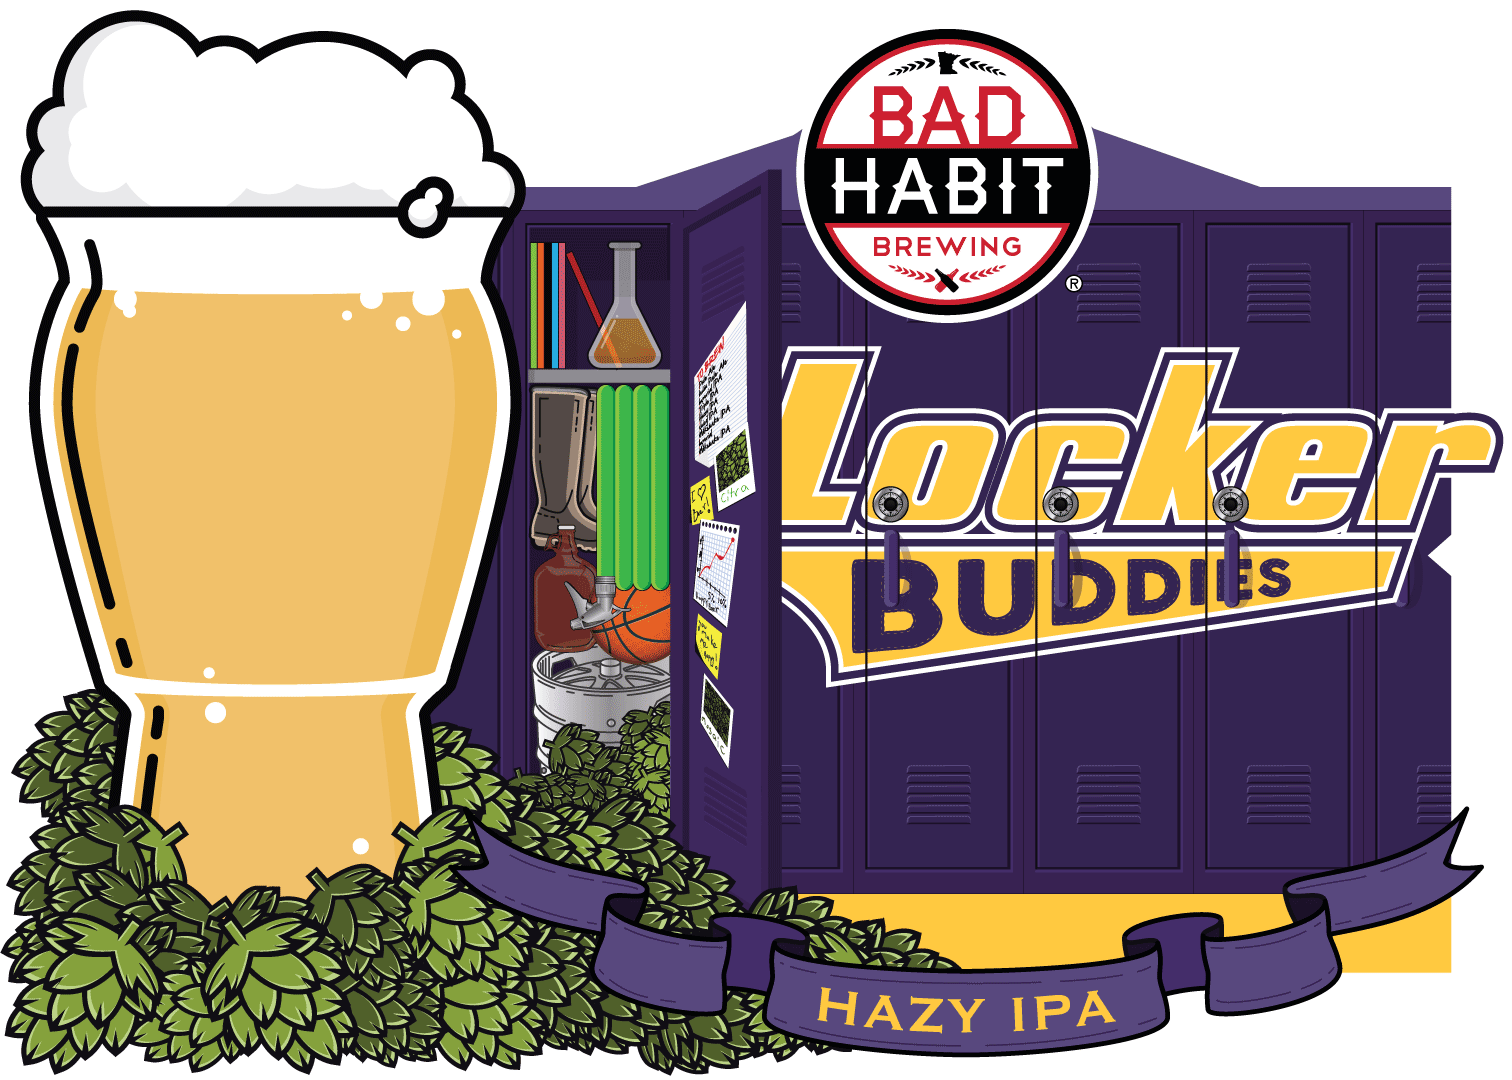 LOCKERBUDDIES - Hazy Double Dry Hopped IPA | 5.9% ABVFour boots, Three brewers gloves, Two brewers, One locker room. Who will be the champion of session beers? Old buddies Erik and Sean, from Blackstack brewing, have rekindled their brewmance and collaborated on a sessionable, hazy, double dry hopped IPA.